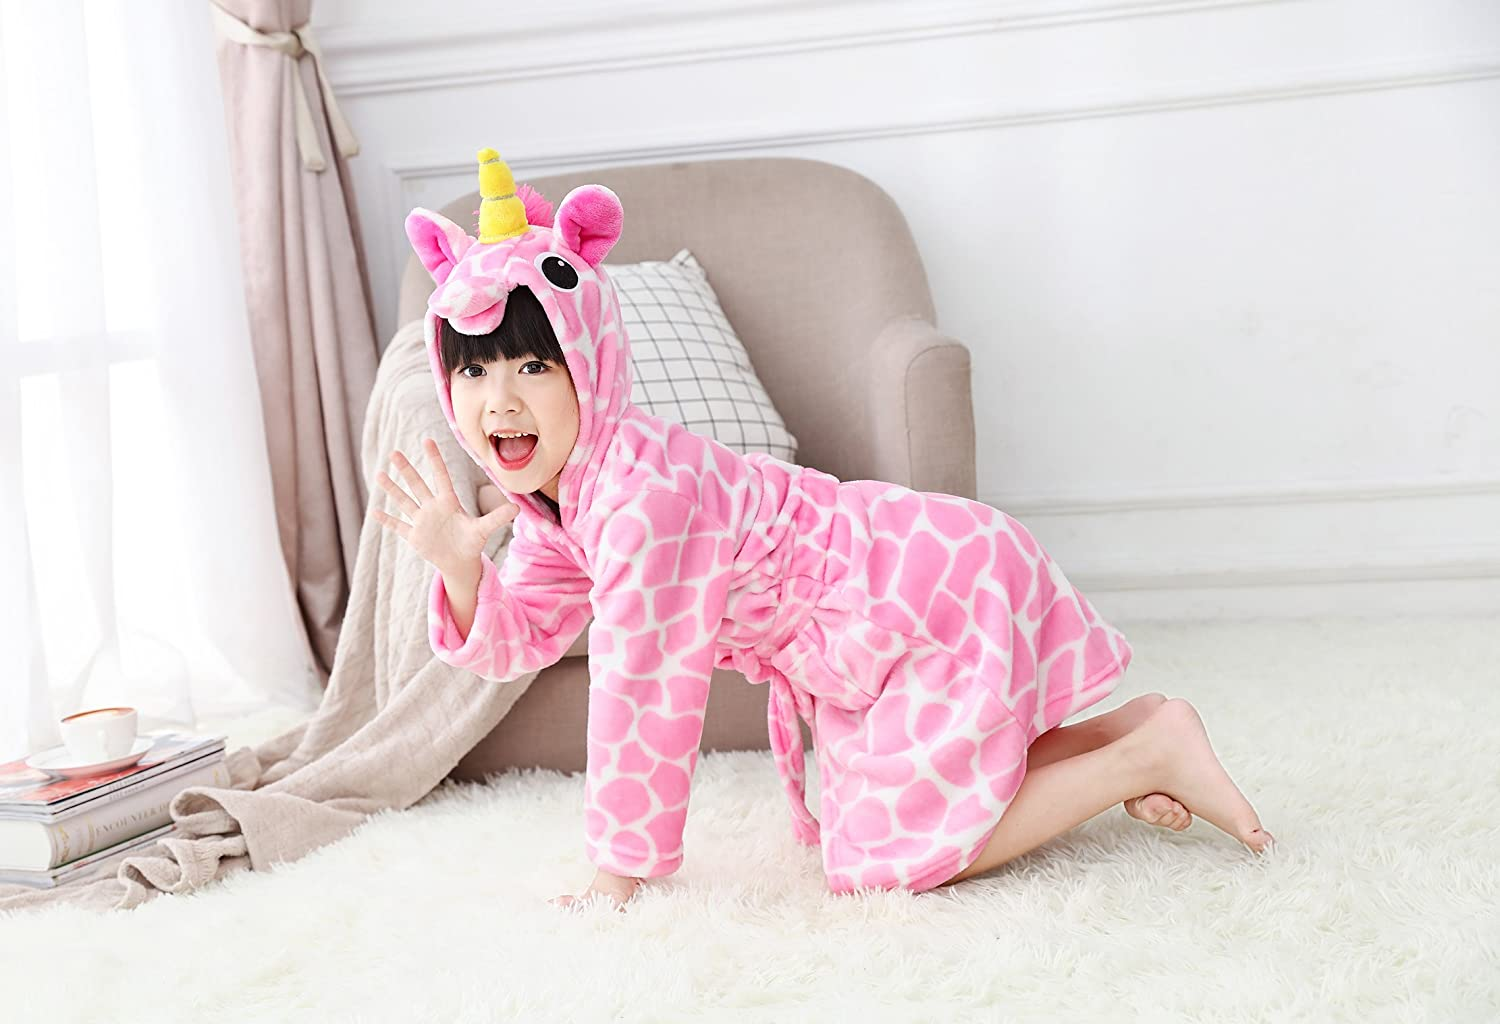 UsHigh Kids Unicorn Robe Girls Soft Plush Bathrobe Novelty Hooded Nightgown Gift